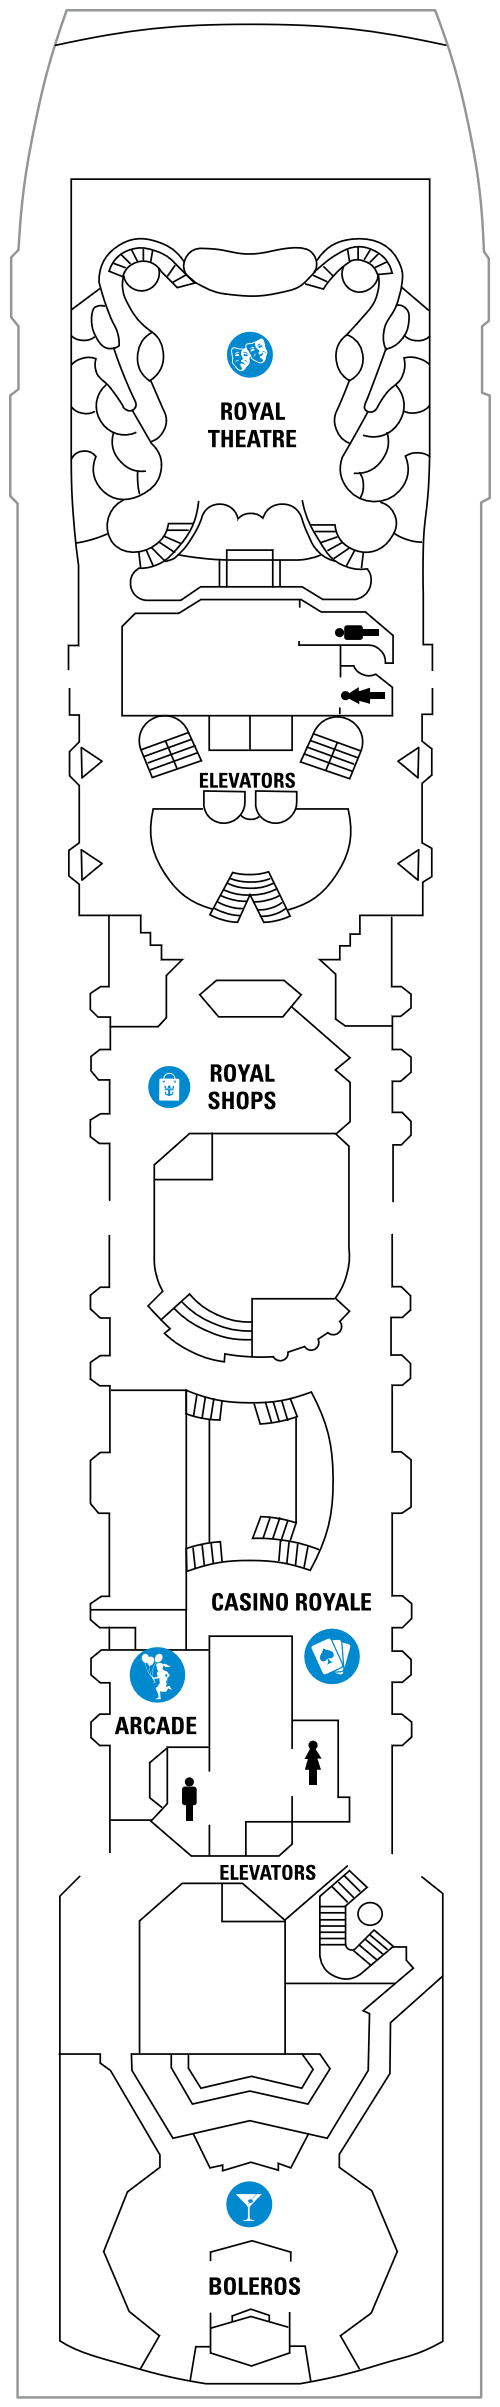 Empress Of The Seas Deck 6 layout